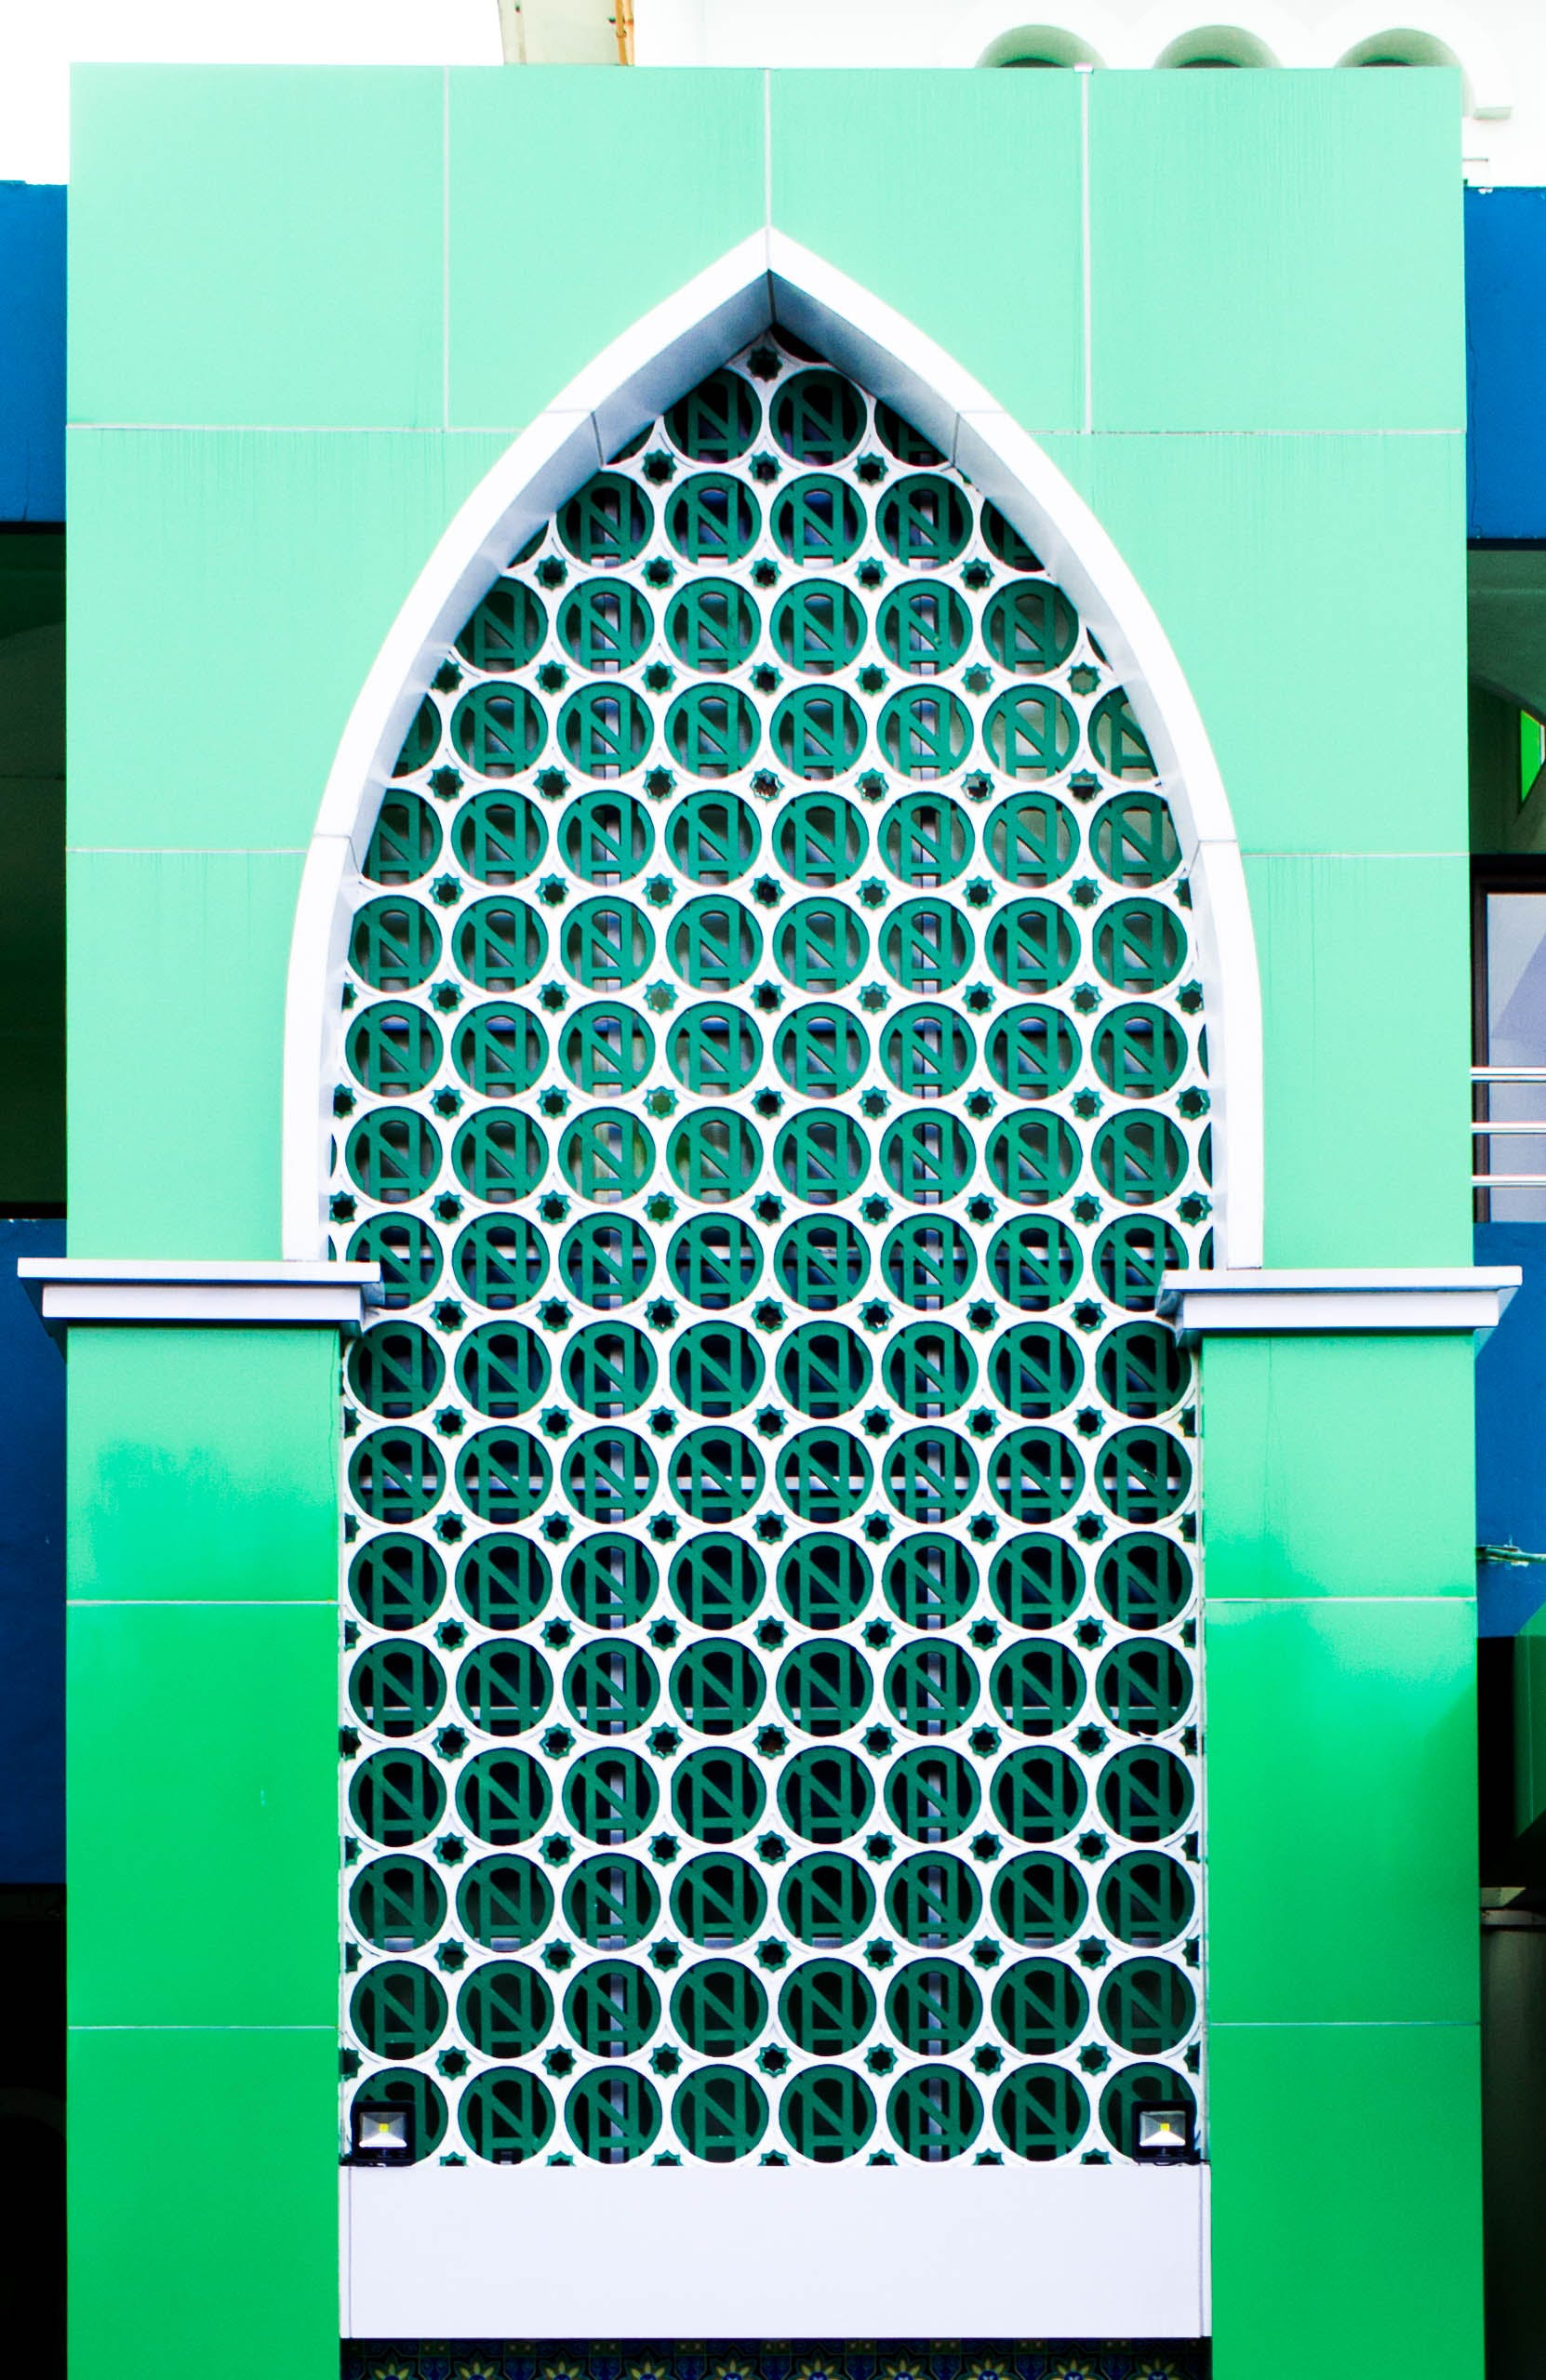 Free stock photo of mosque